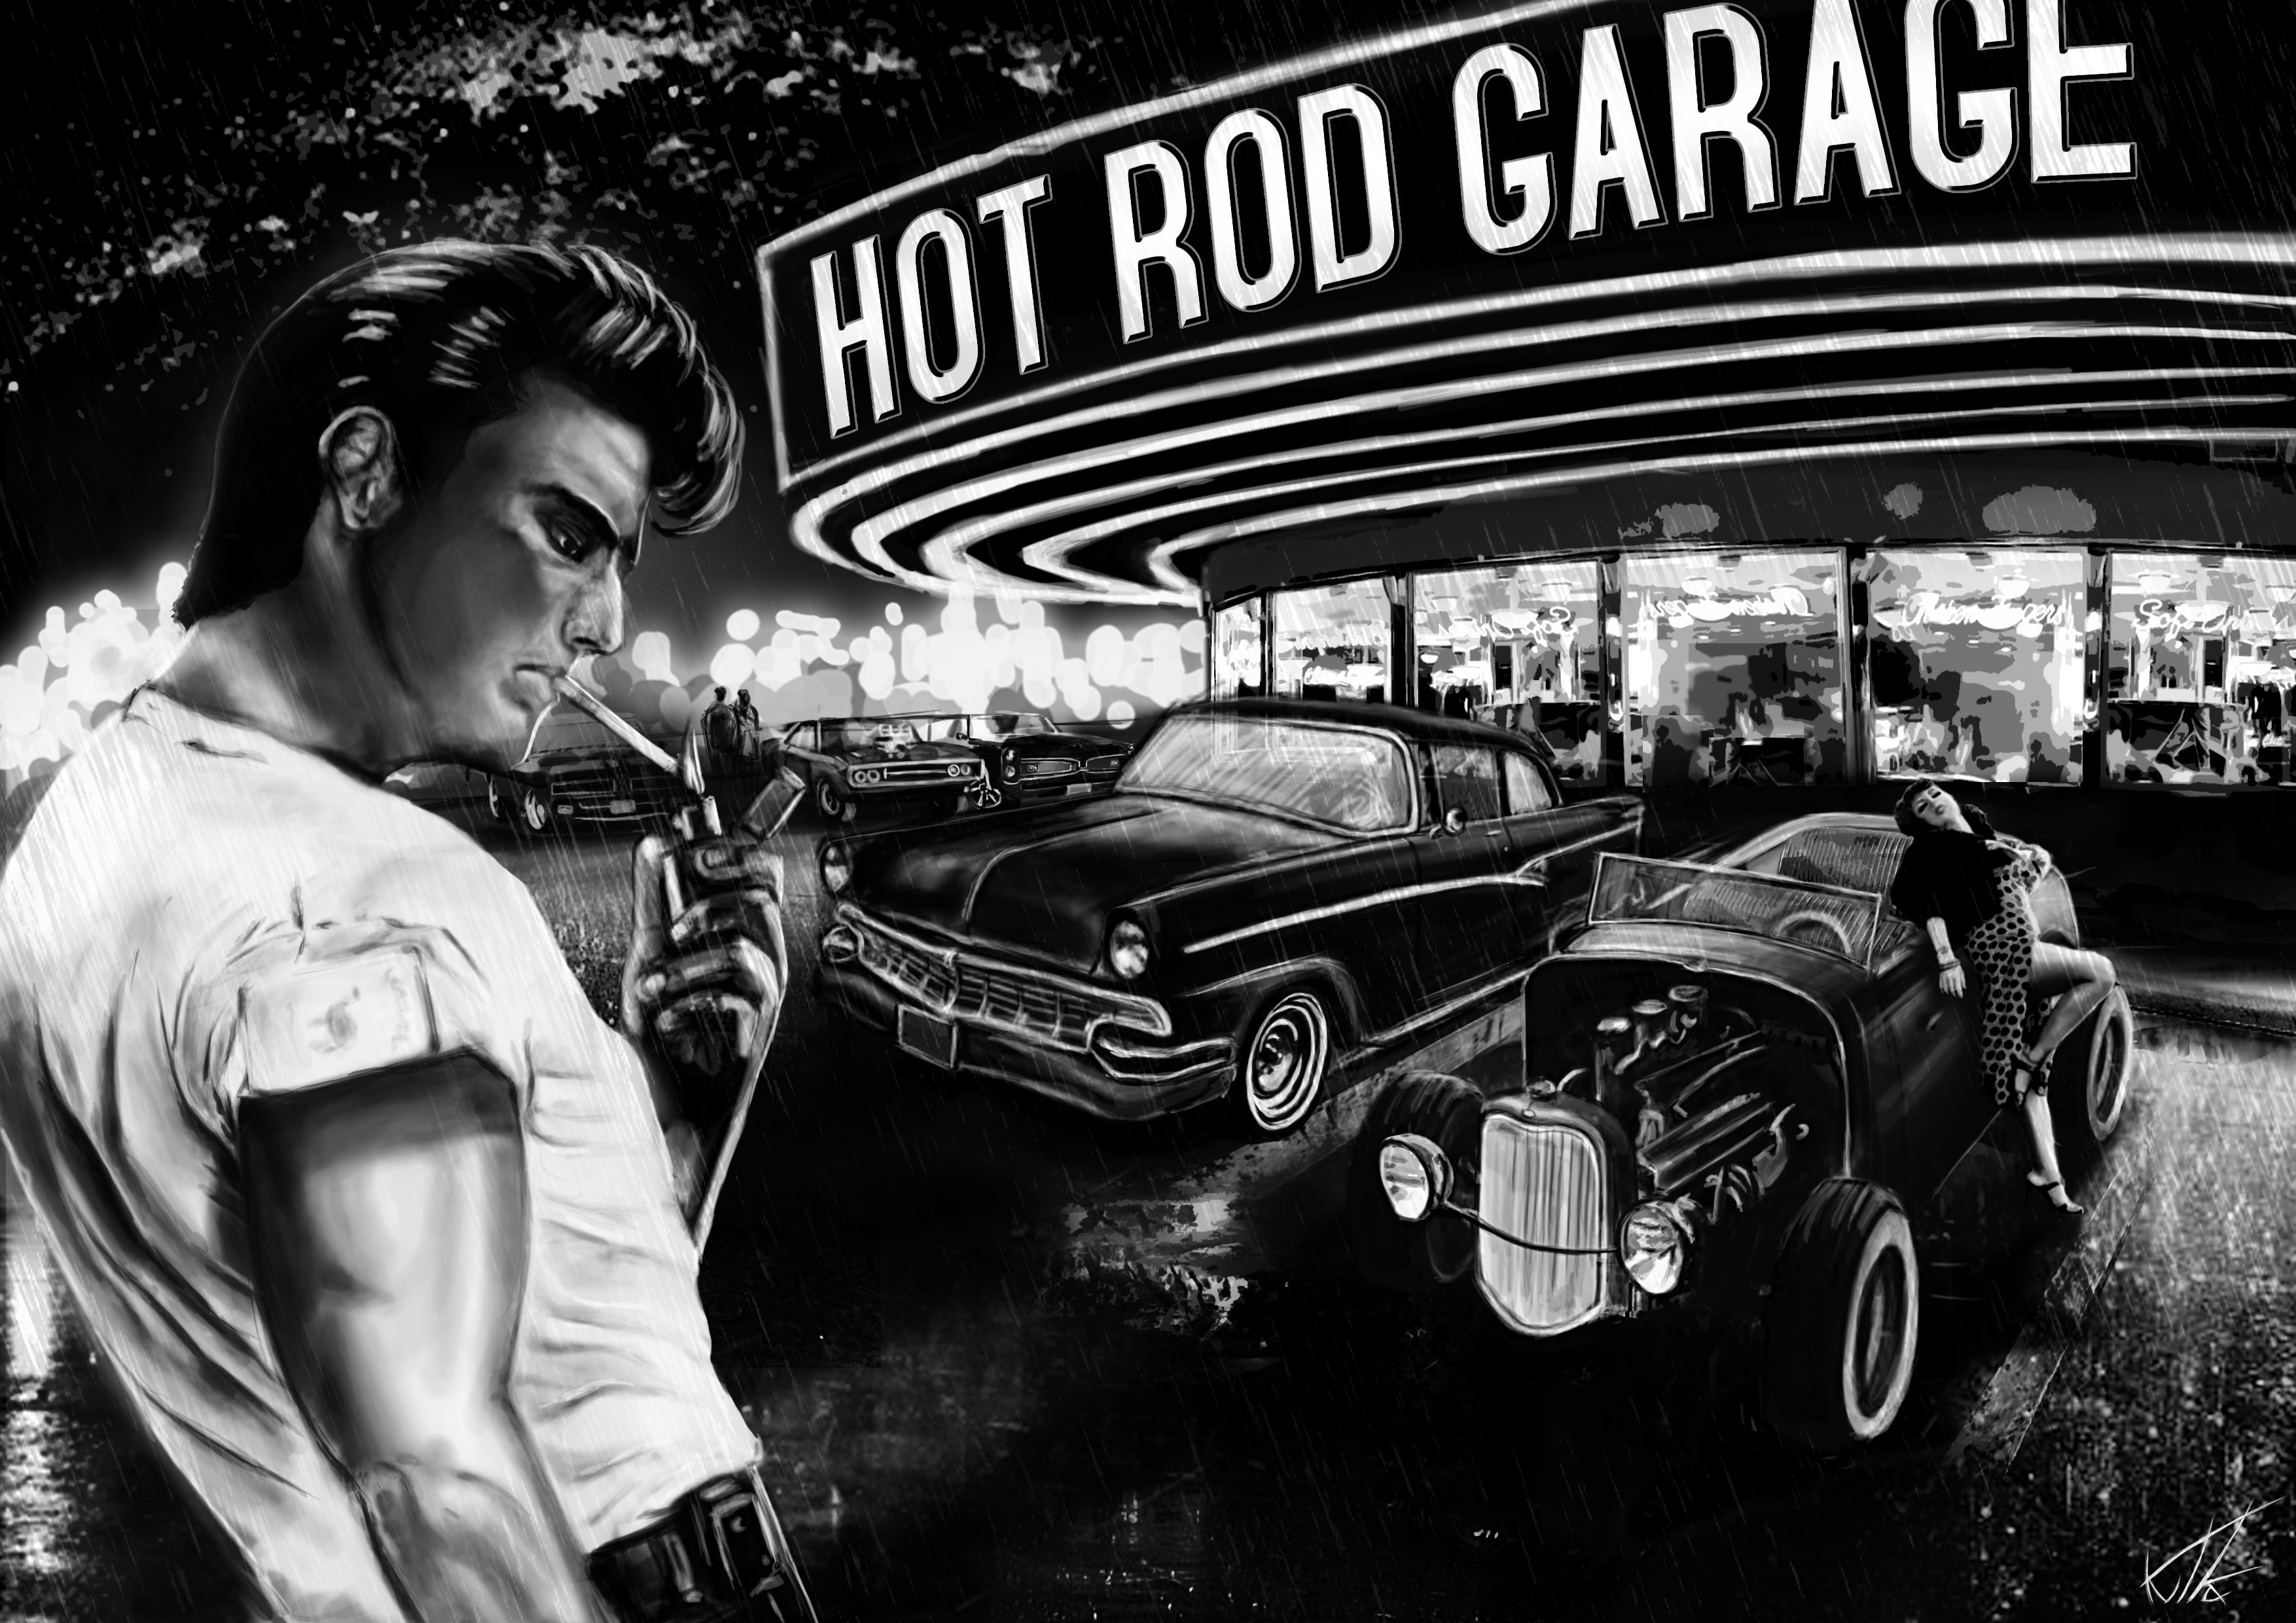 Hot Rod Garage : Tapety hot rod garage